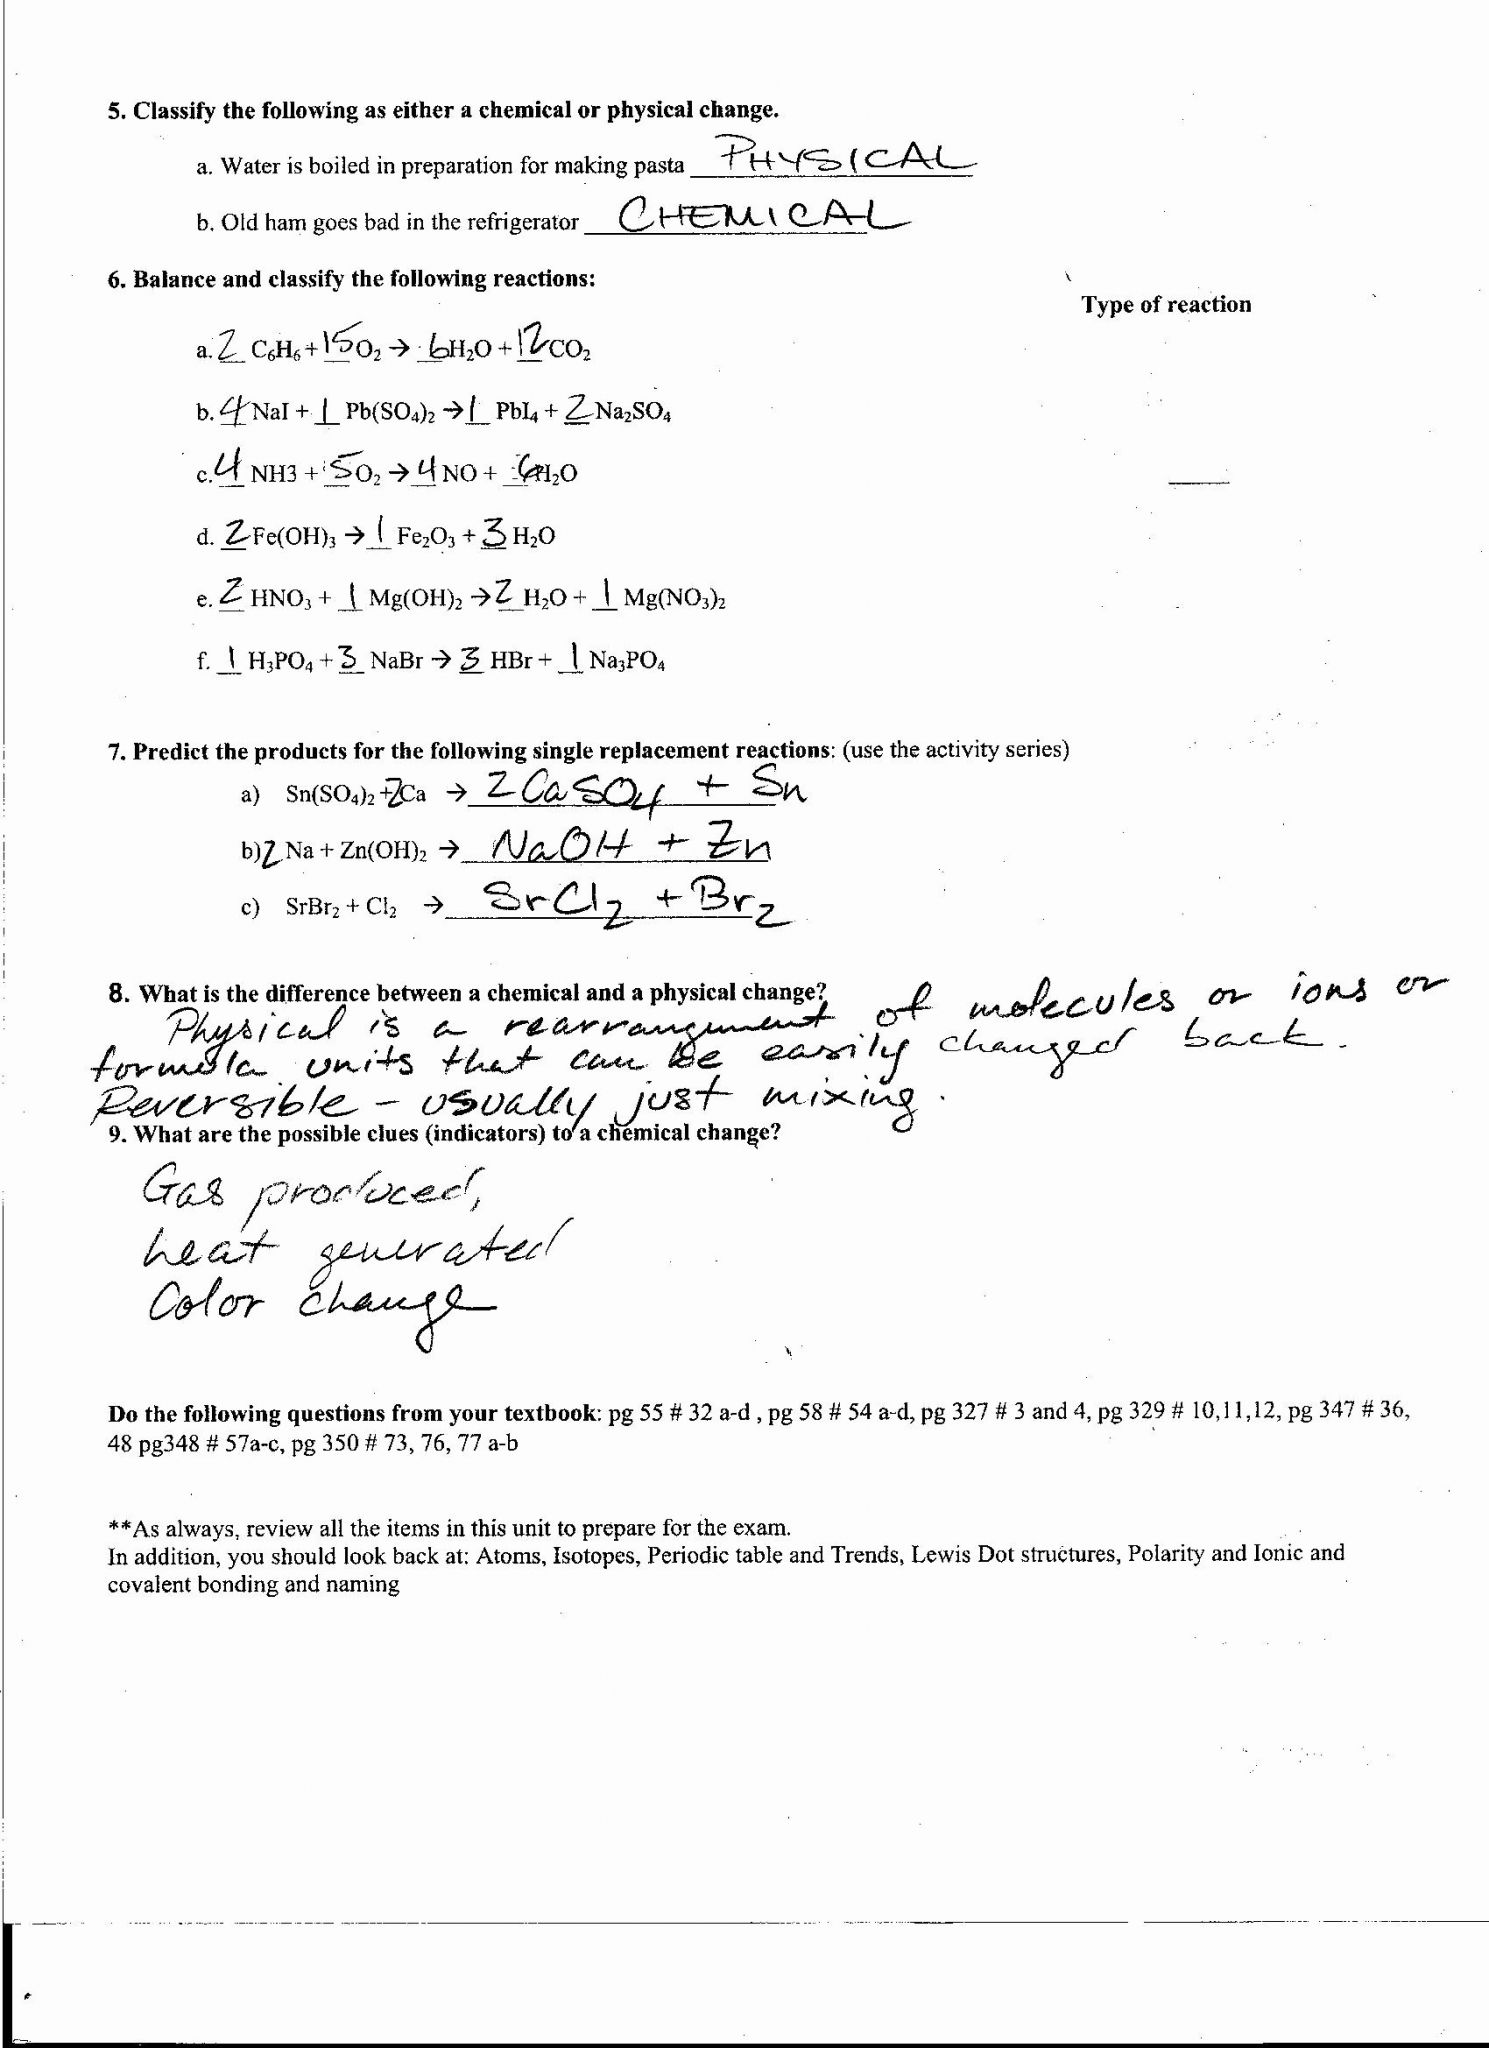 activity series review worksheet answer key